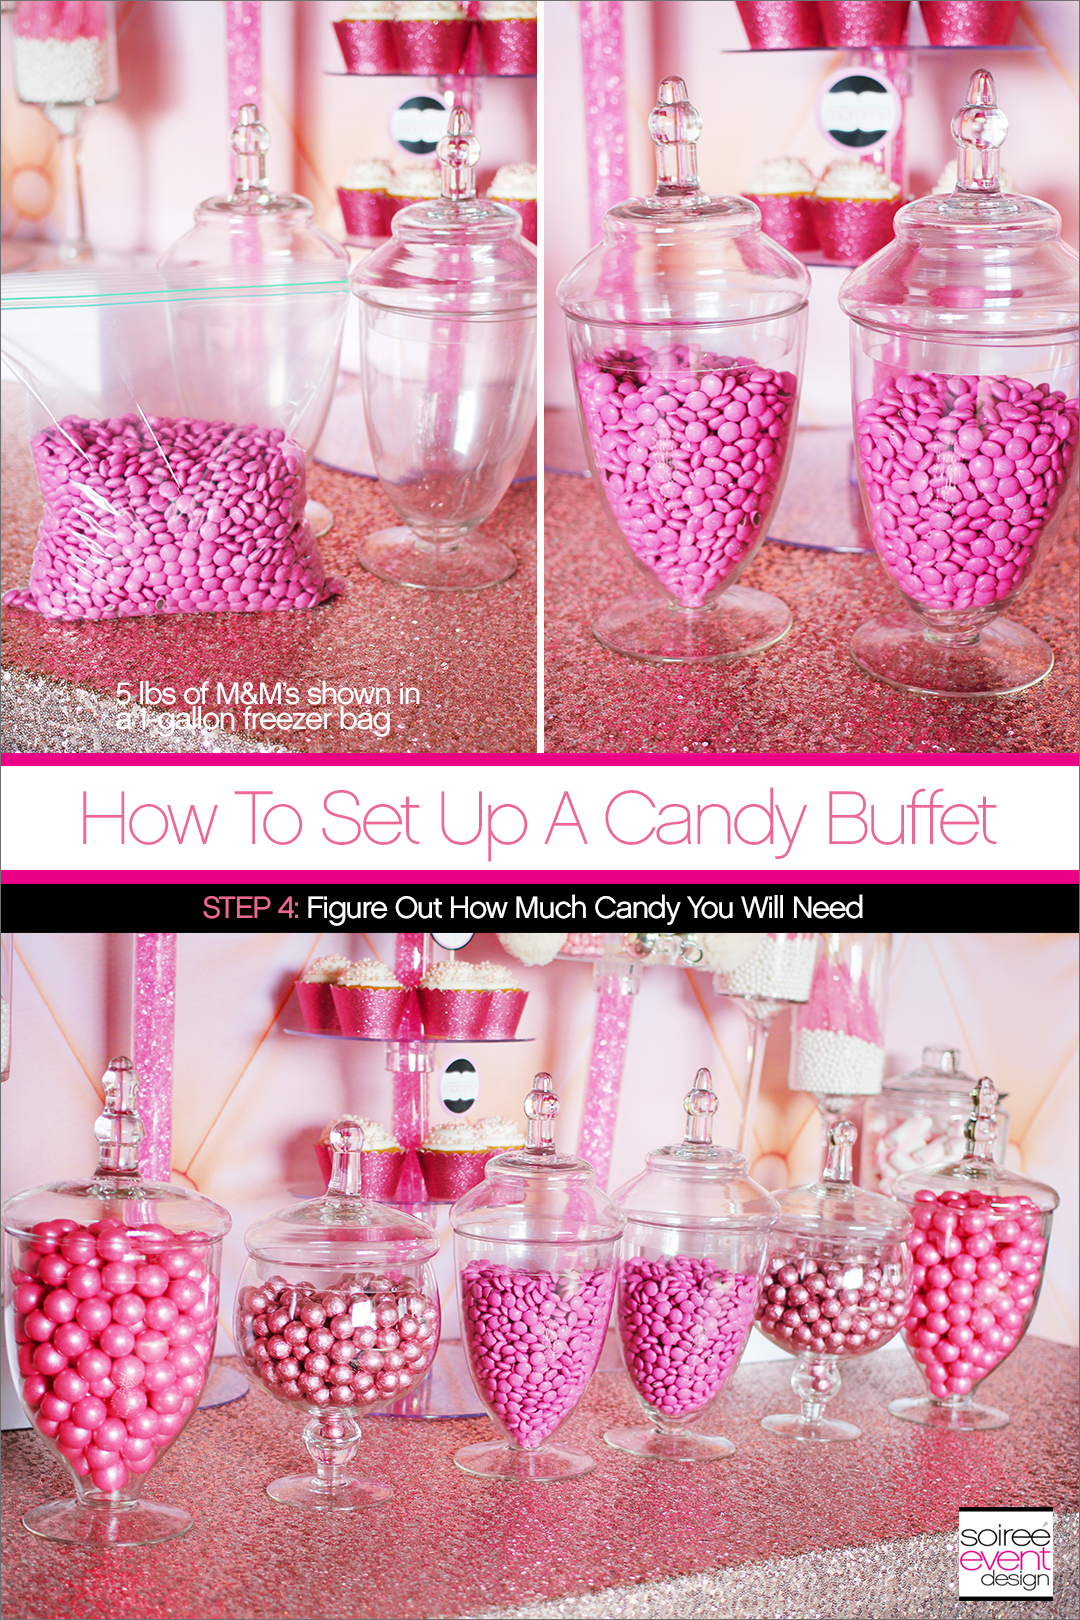 How to Set Up a Candy Buffet Step 4